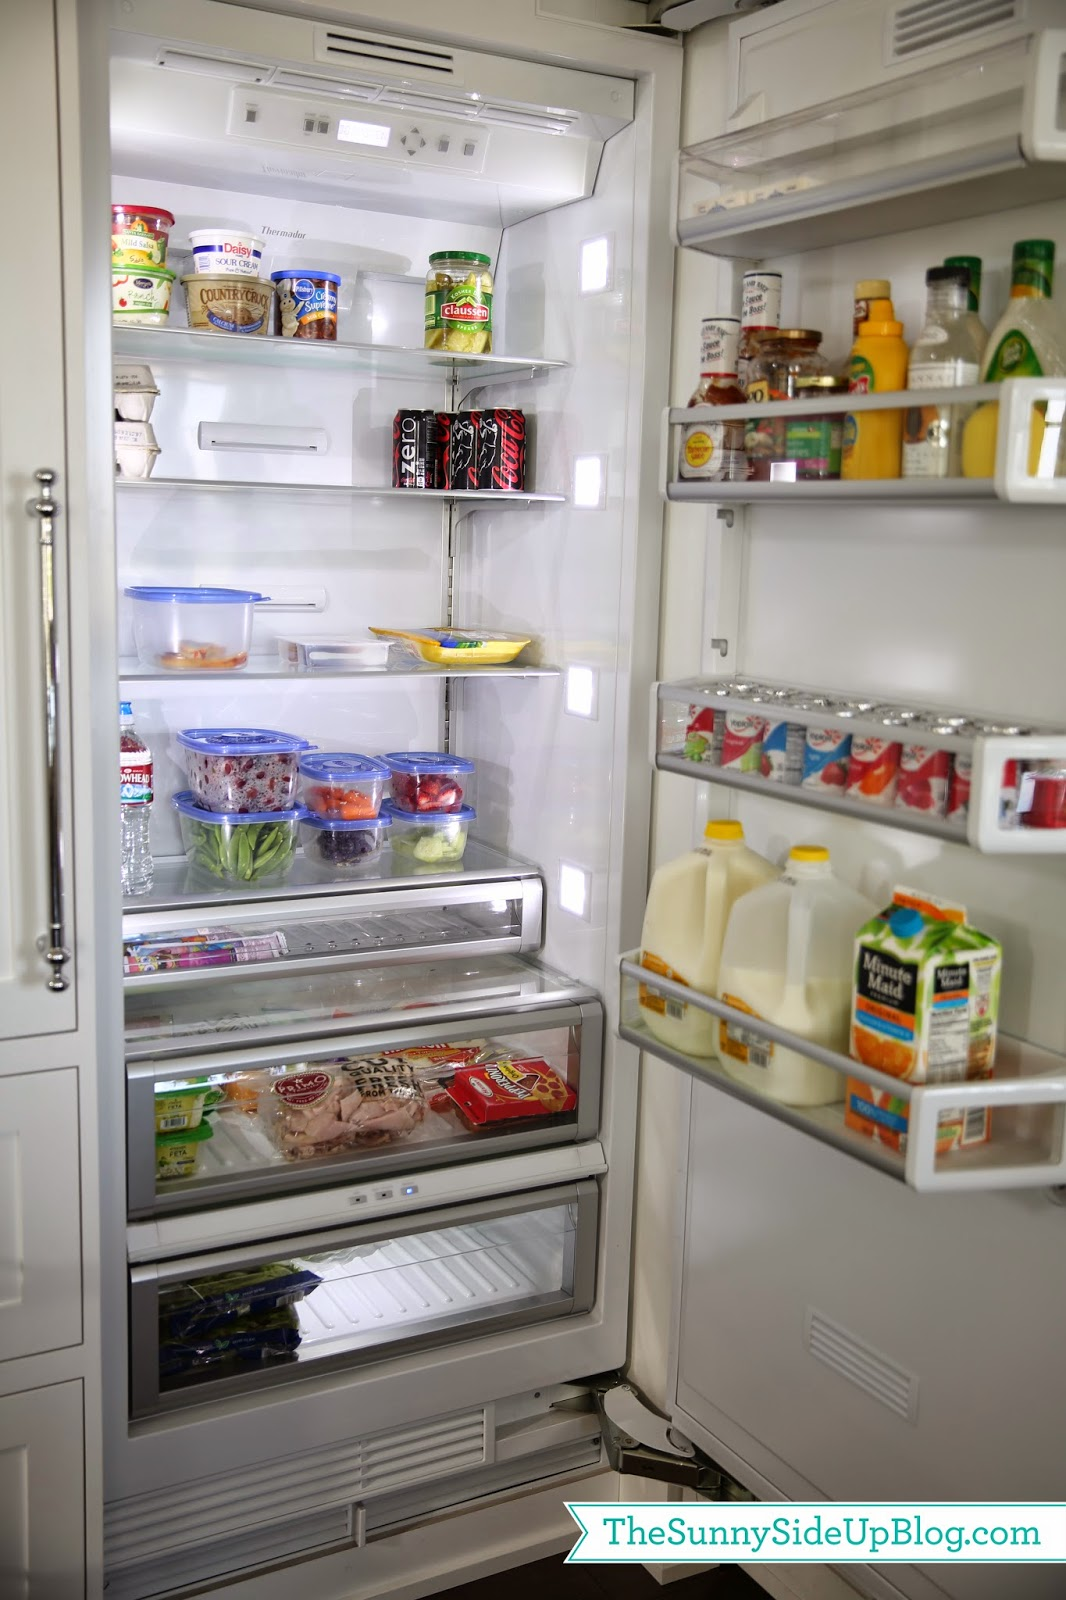 Organized kitchen drawers and fridge - The Sunny Side Up Blog Organized Refrigerator Healthy